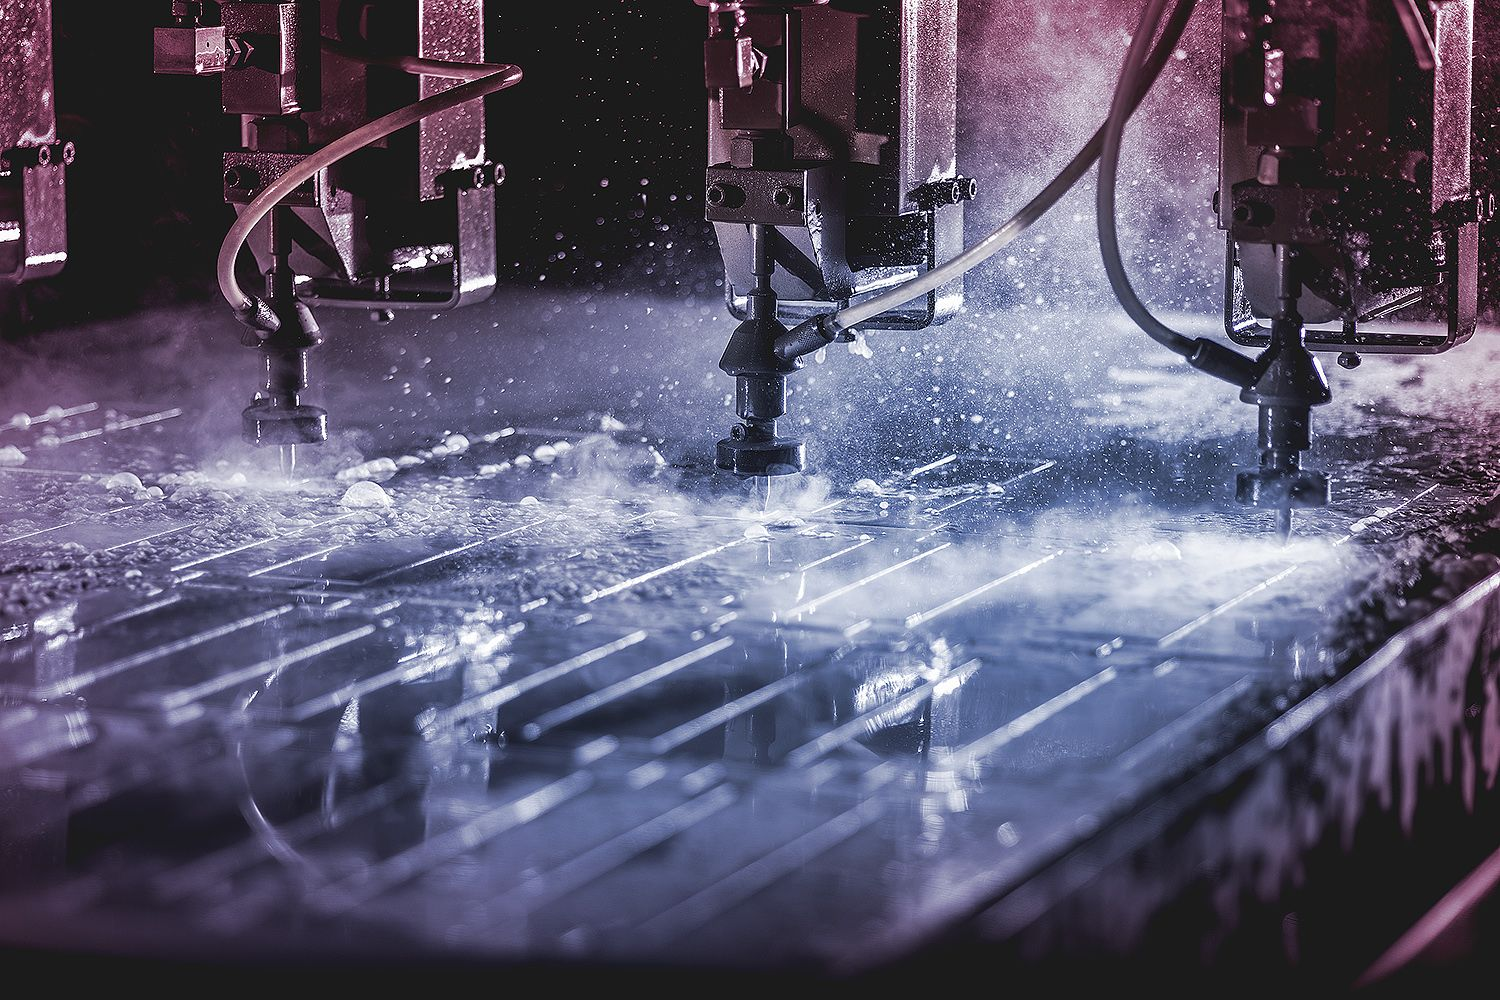 Ultra Cut water cutting, industrialphoto, lightning, photo Mika Tervaskangas / Therwiz Design. Ultra Cut vesileikkaus, teollisuuskuva, kuvaus, valaistus, photoshop, kuva, Mika Tervaskangas / Therwiz Design. #ad #technicalphoto #industrialphoto #Therwiz #MikaTervaskangas #TherwizDesign #layout #poster #photo #photomanipulation